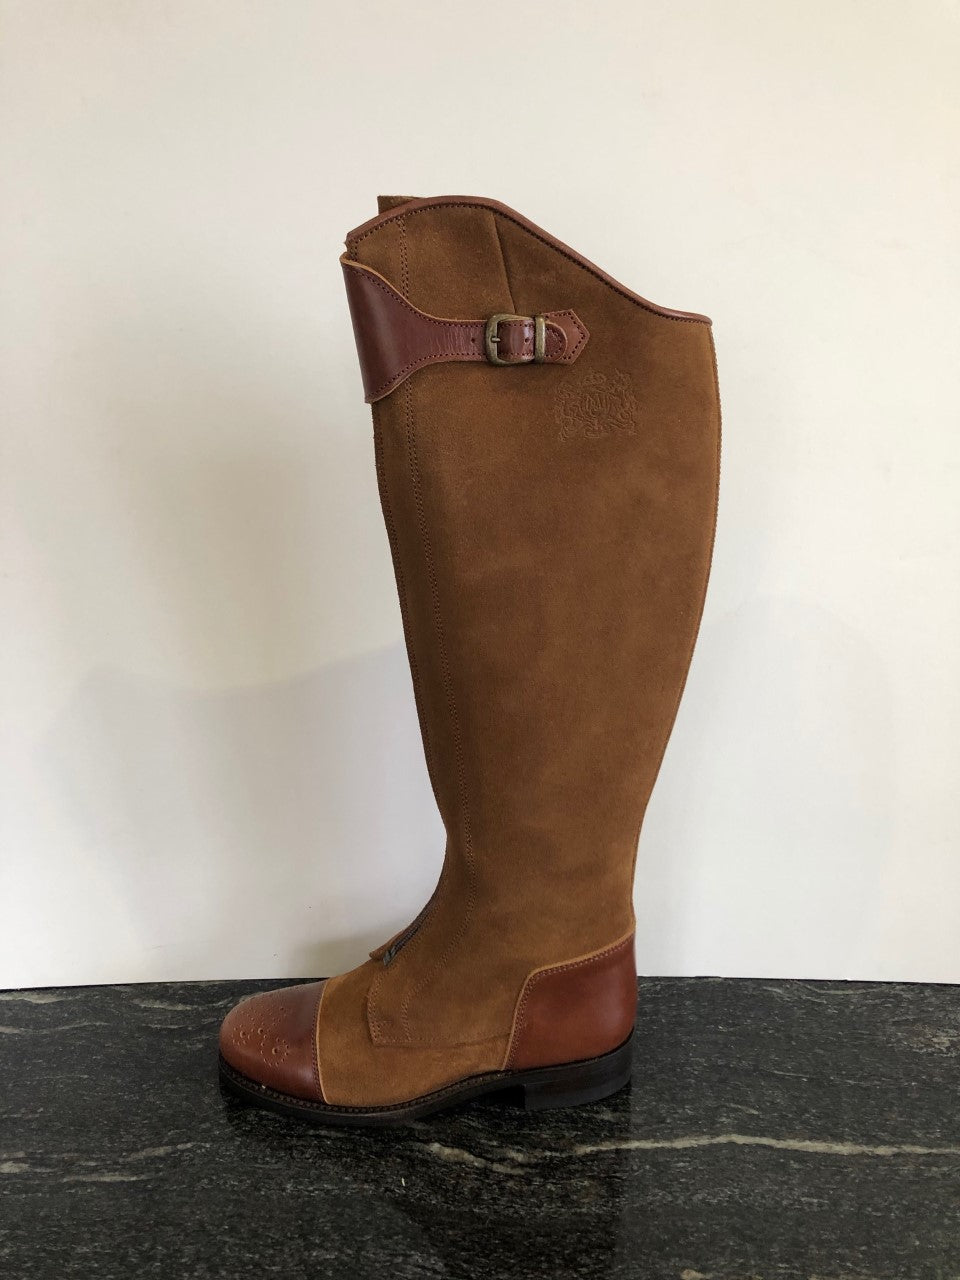 Spanish style suede and leather boot in Tan size 38/5.